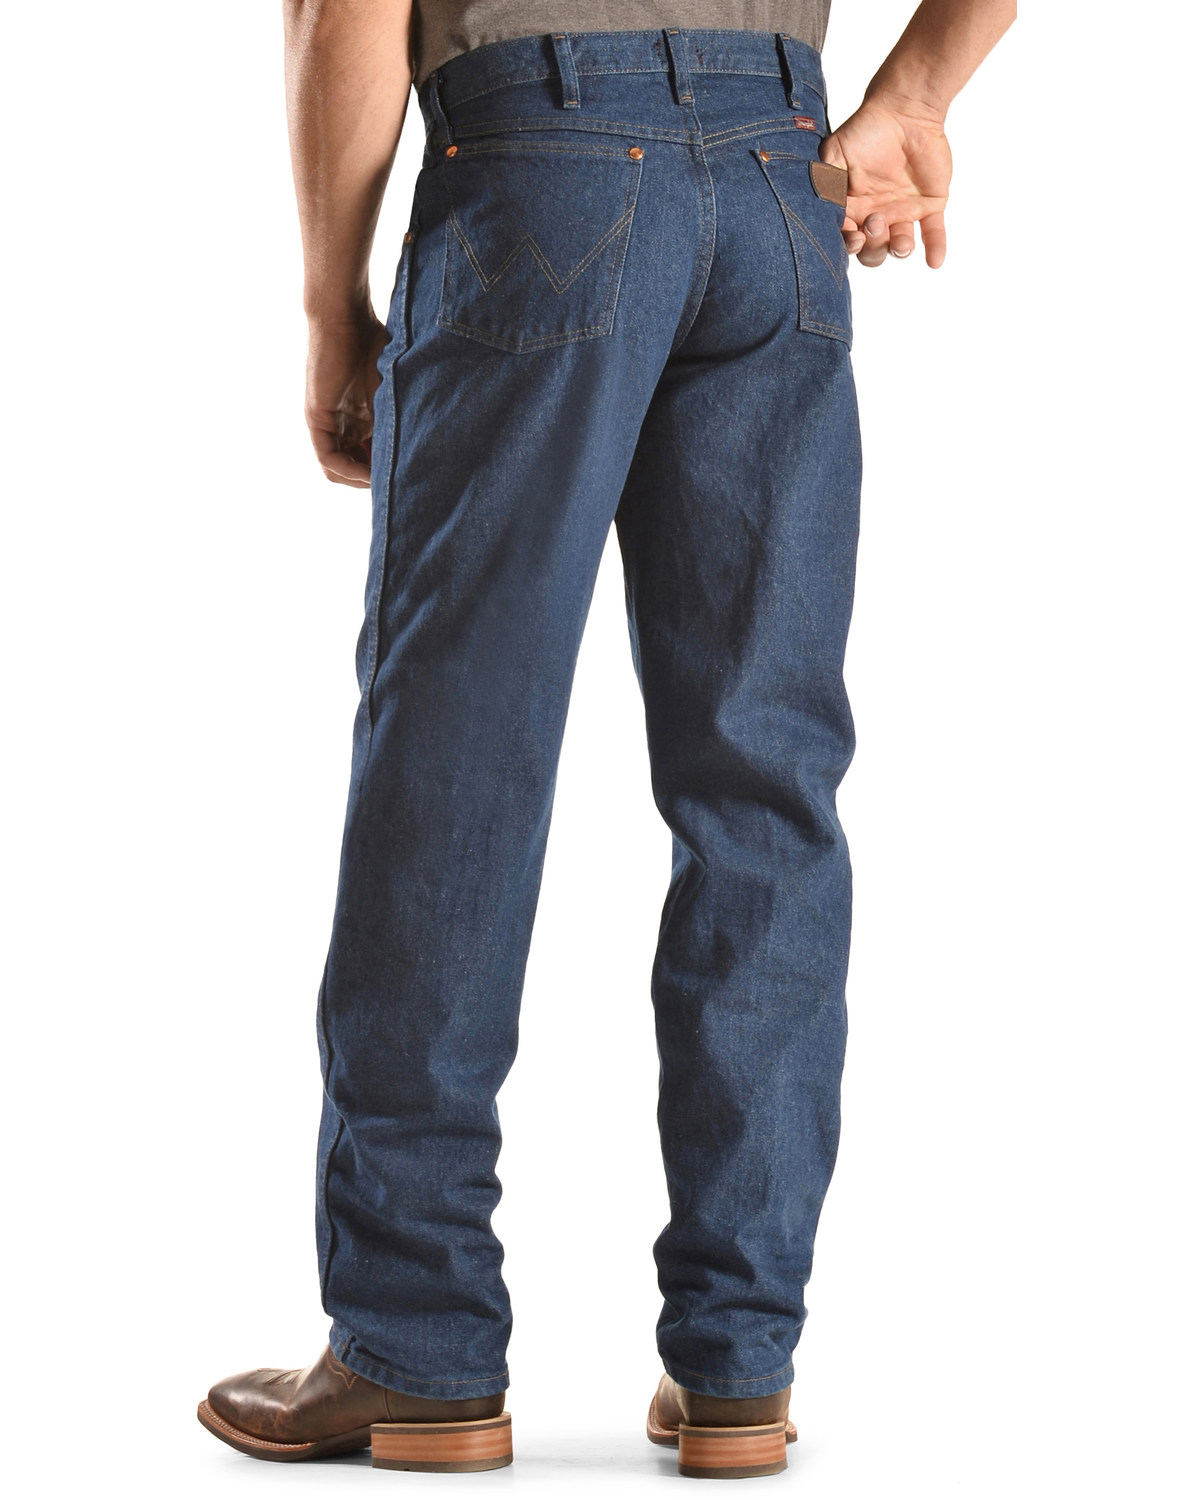 Wrangler 31MWZ Cowboy Cut Relaxed Fit